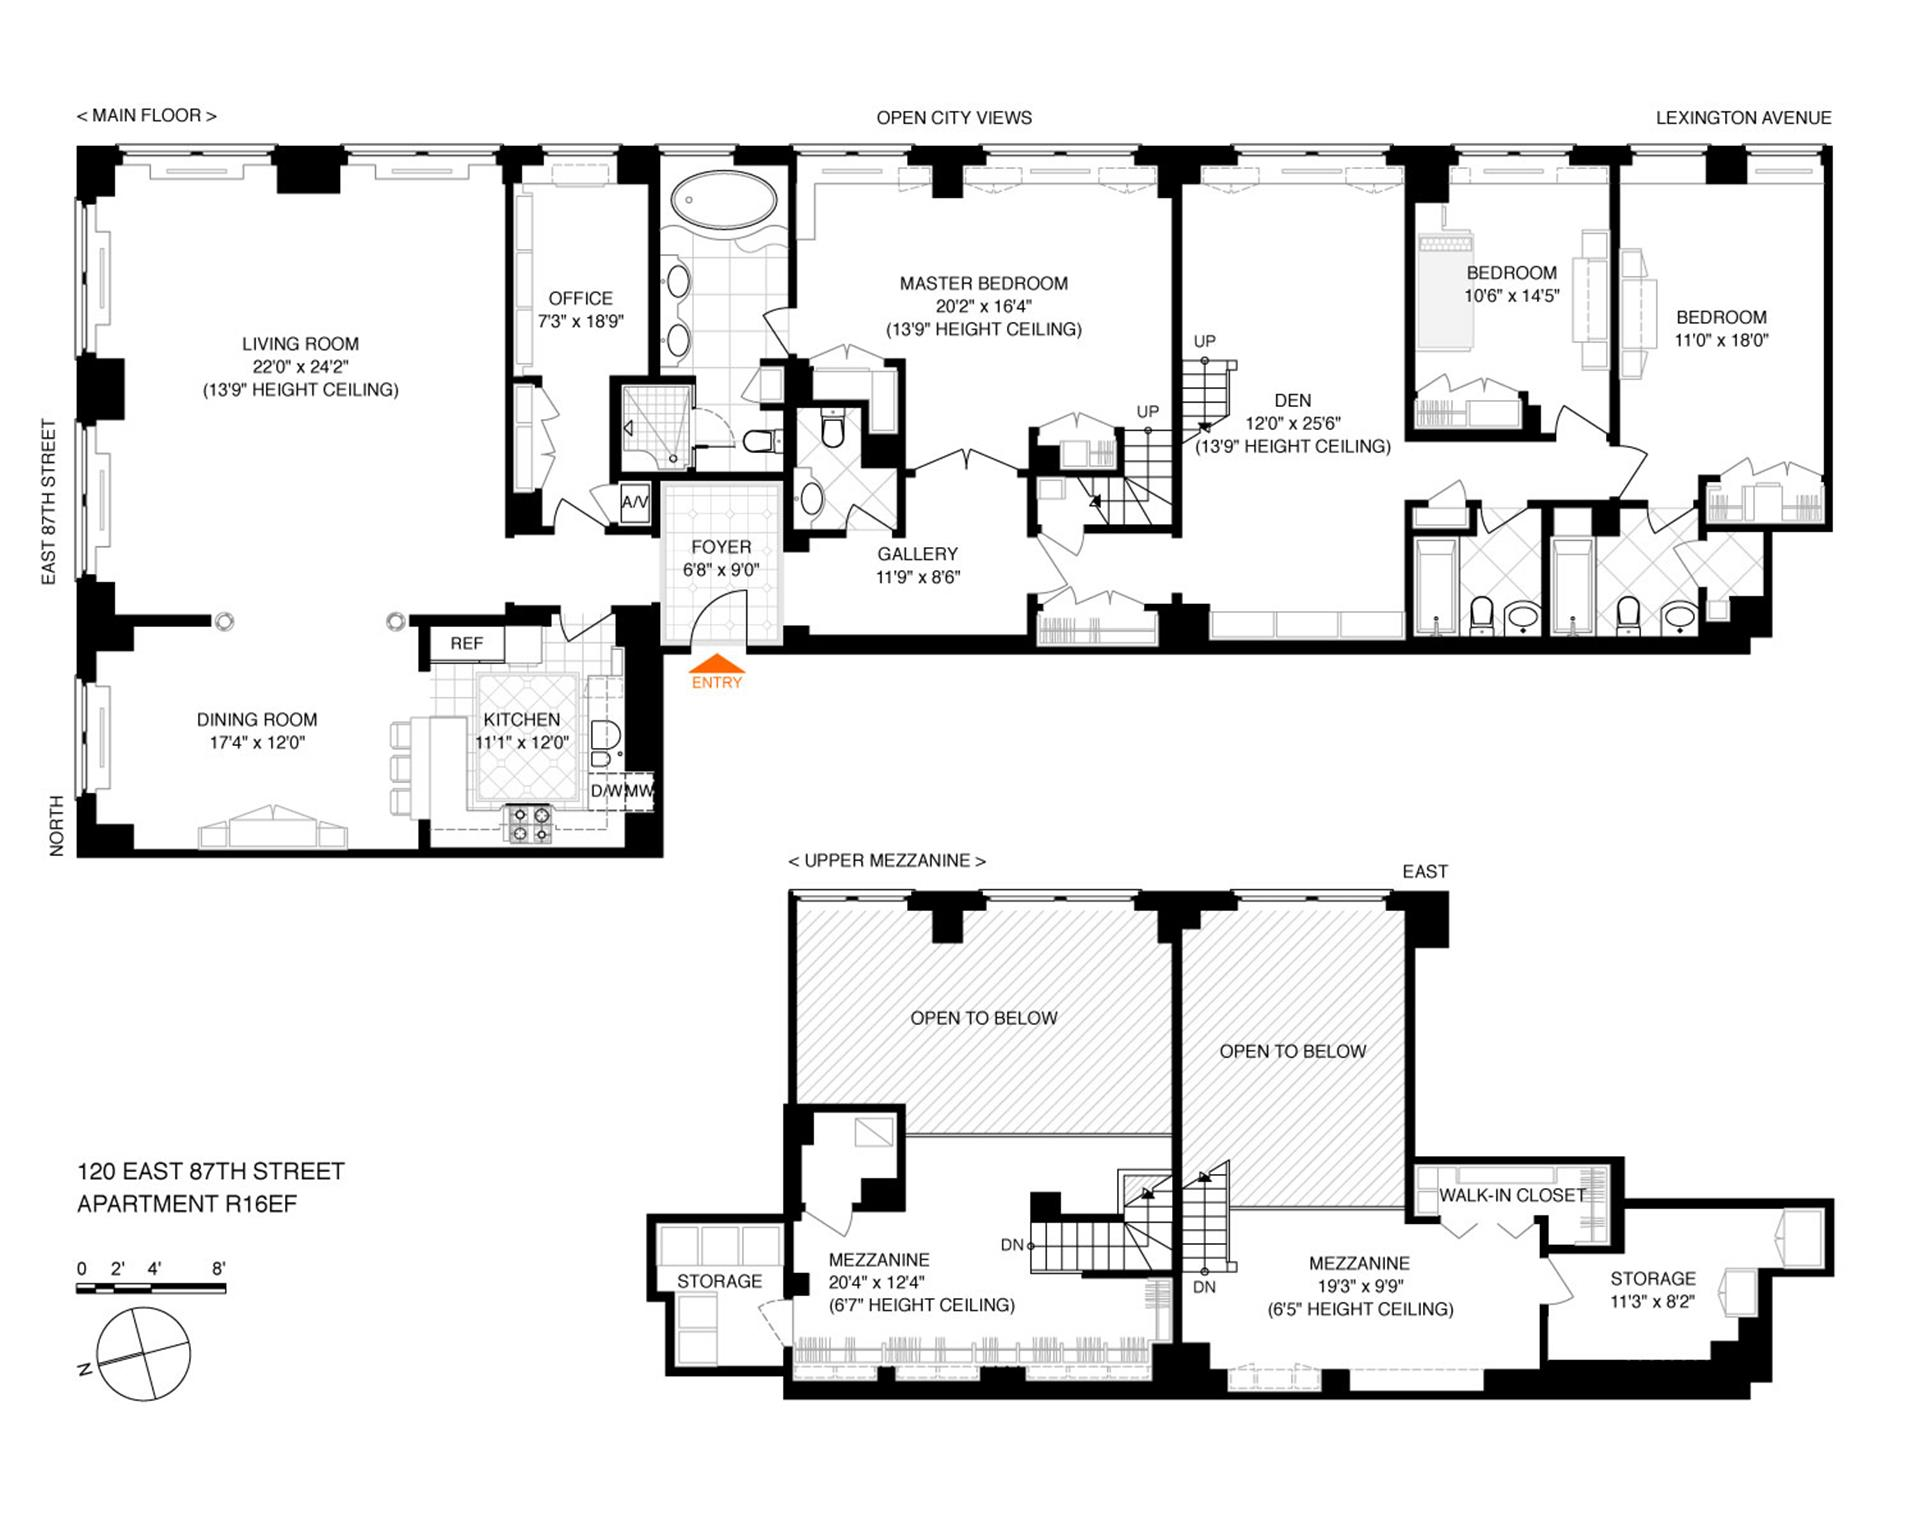 Floor plan of 120 East 87th St, R16EF - Carnegie Hill, New York